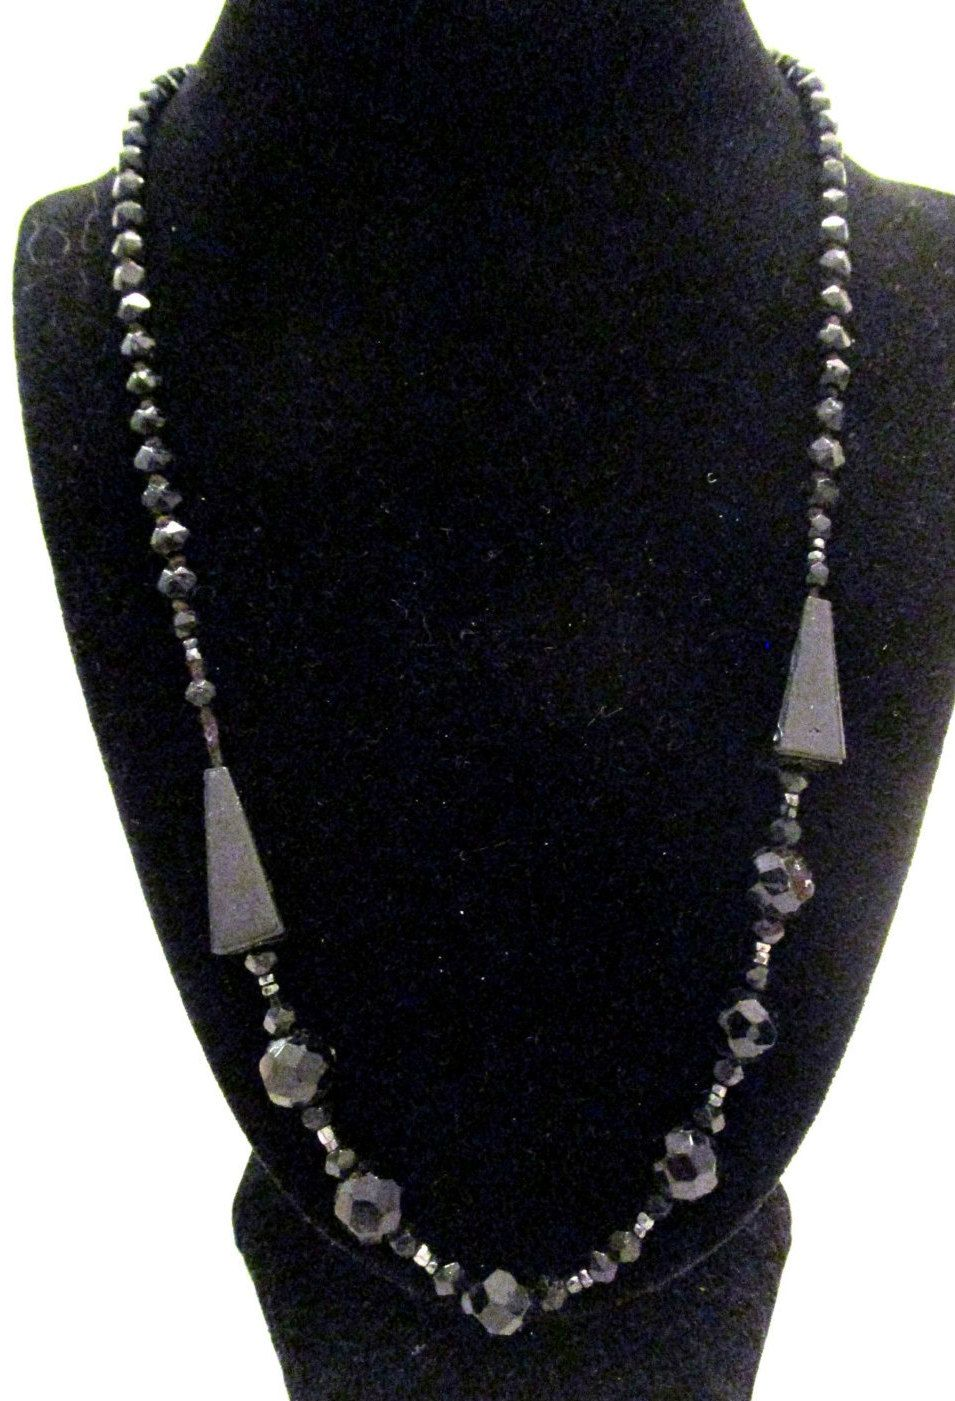 Antique ART DECO Czech Mourning Glass Faceted Beads Flapper Necklace N133 by MyJewelsBoutique on Etsy